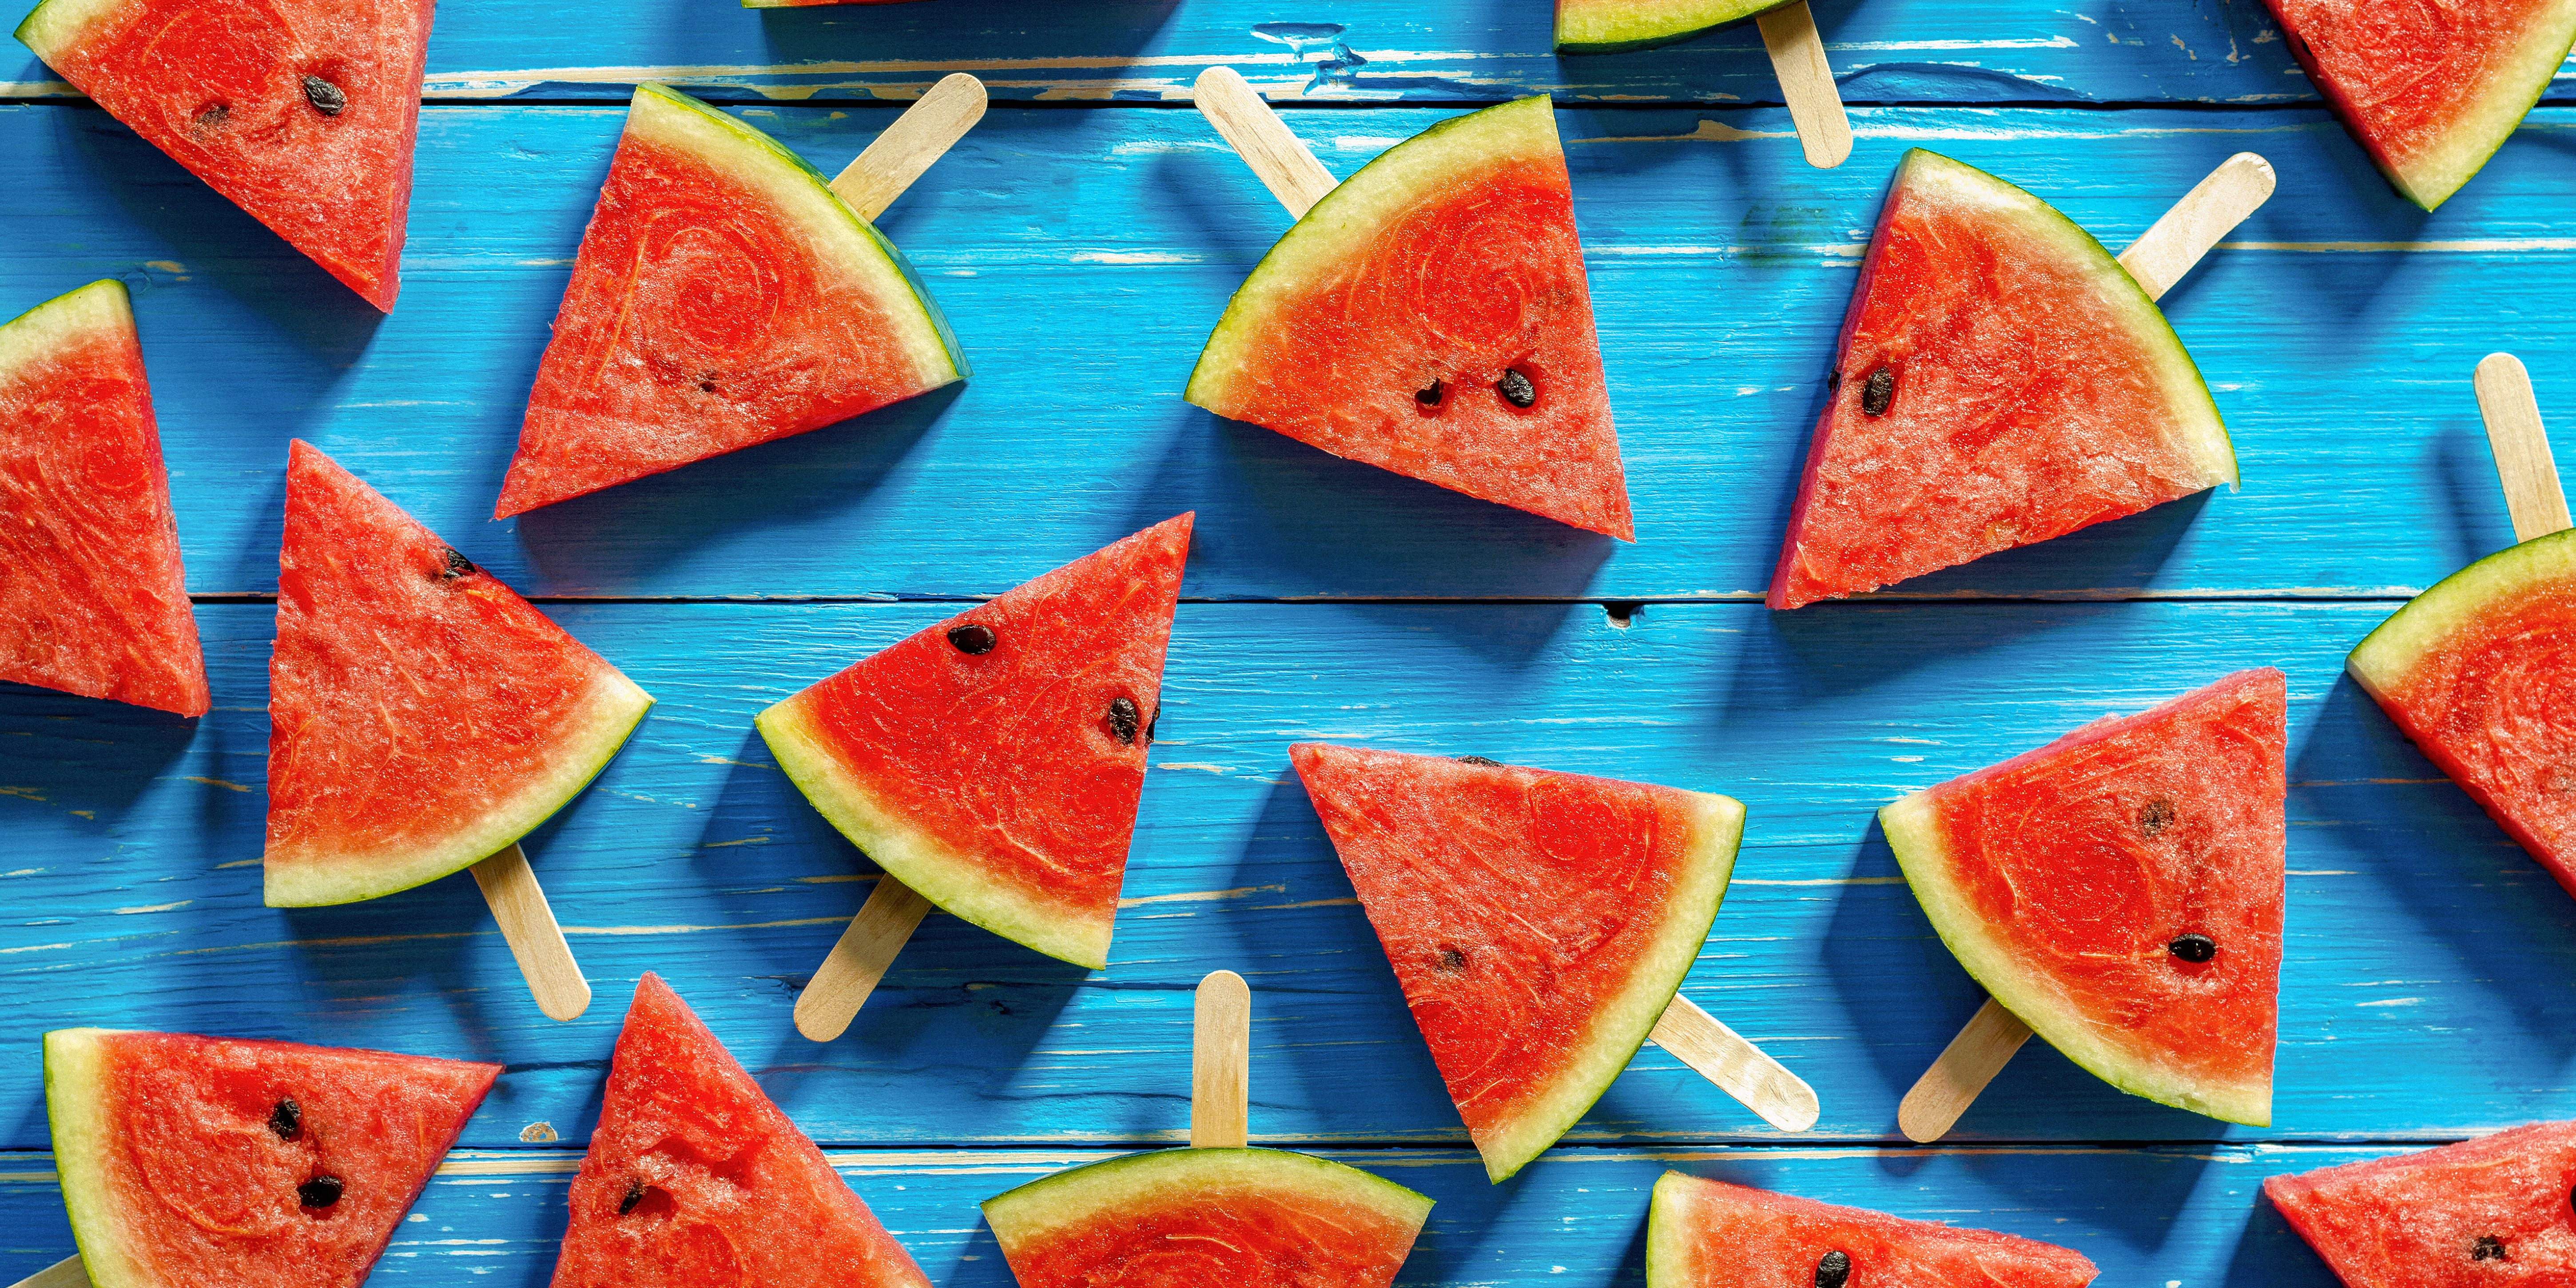 Watermelon,Slice,Popsicles,On,A,Blue,Rustic,Wood,Background